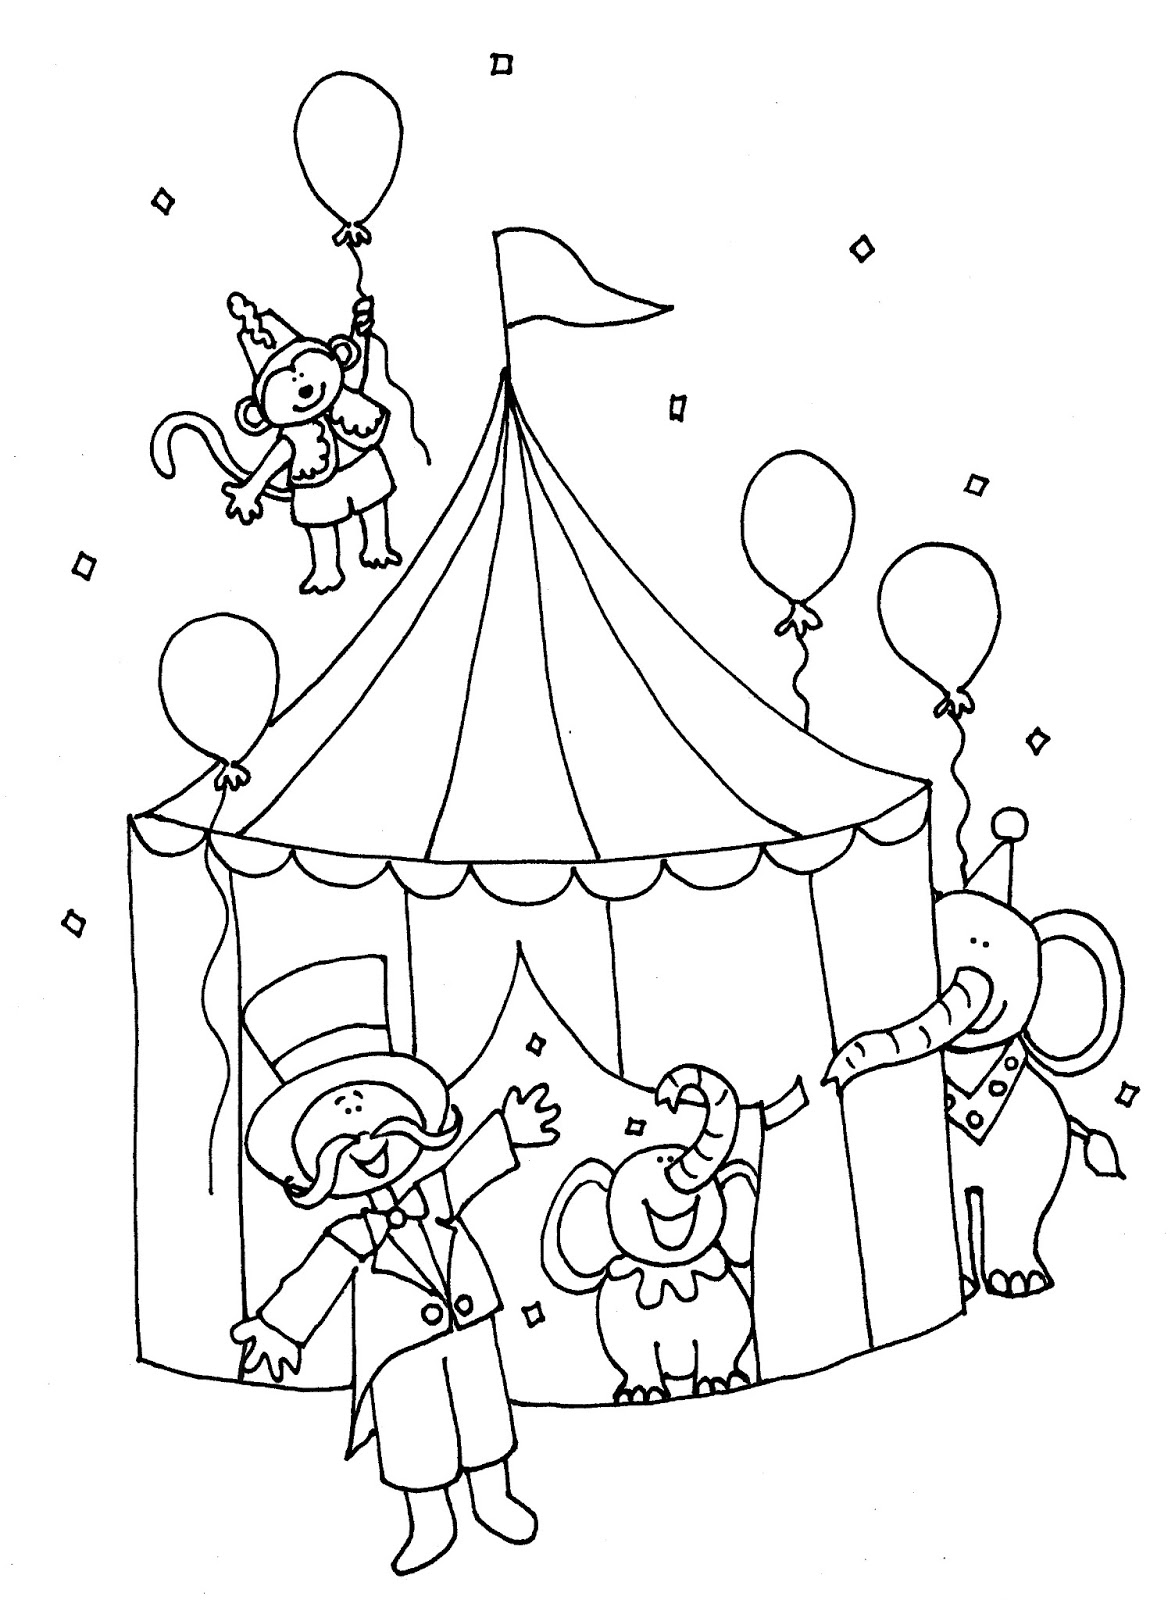 free downloadable circus coloring pages - photo#21